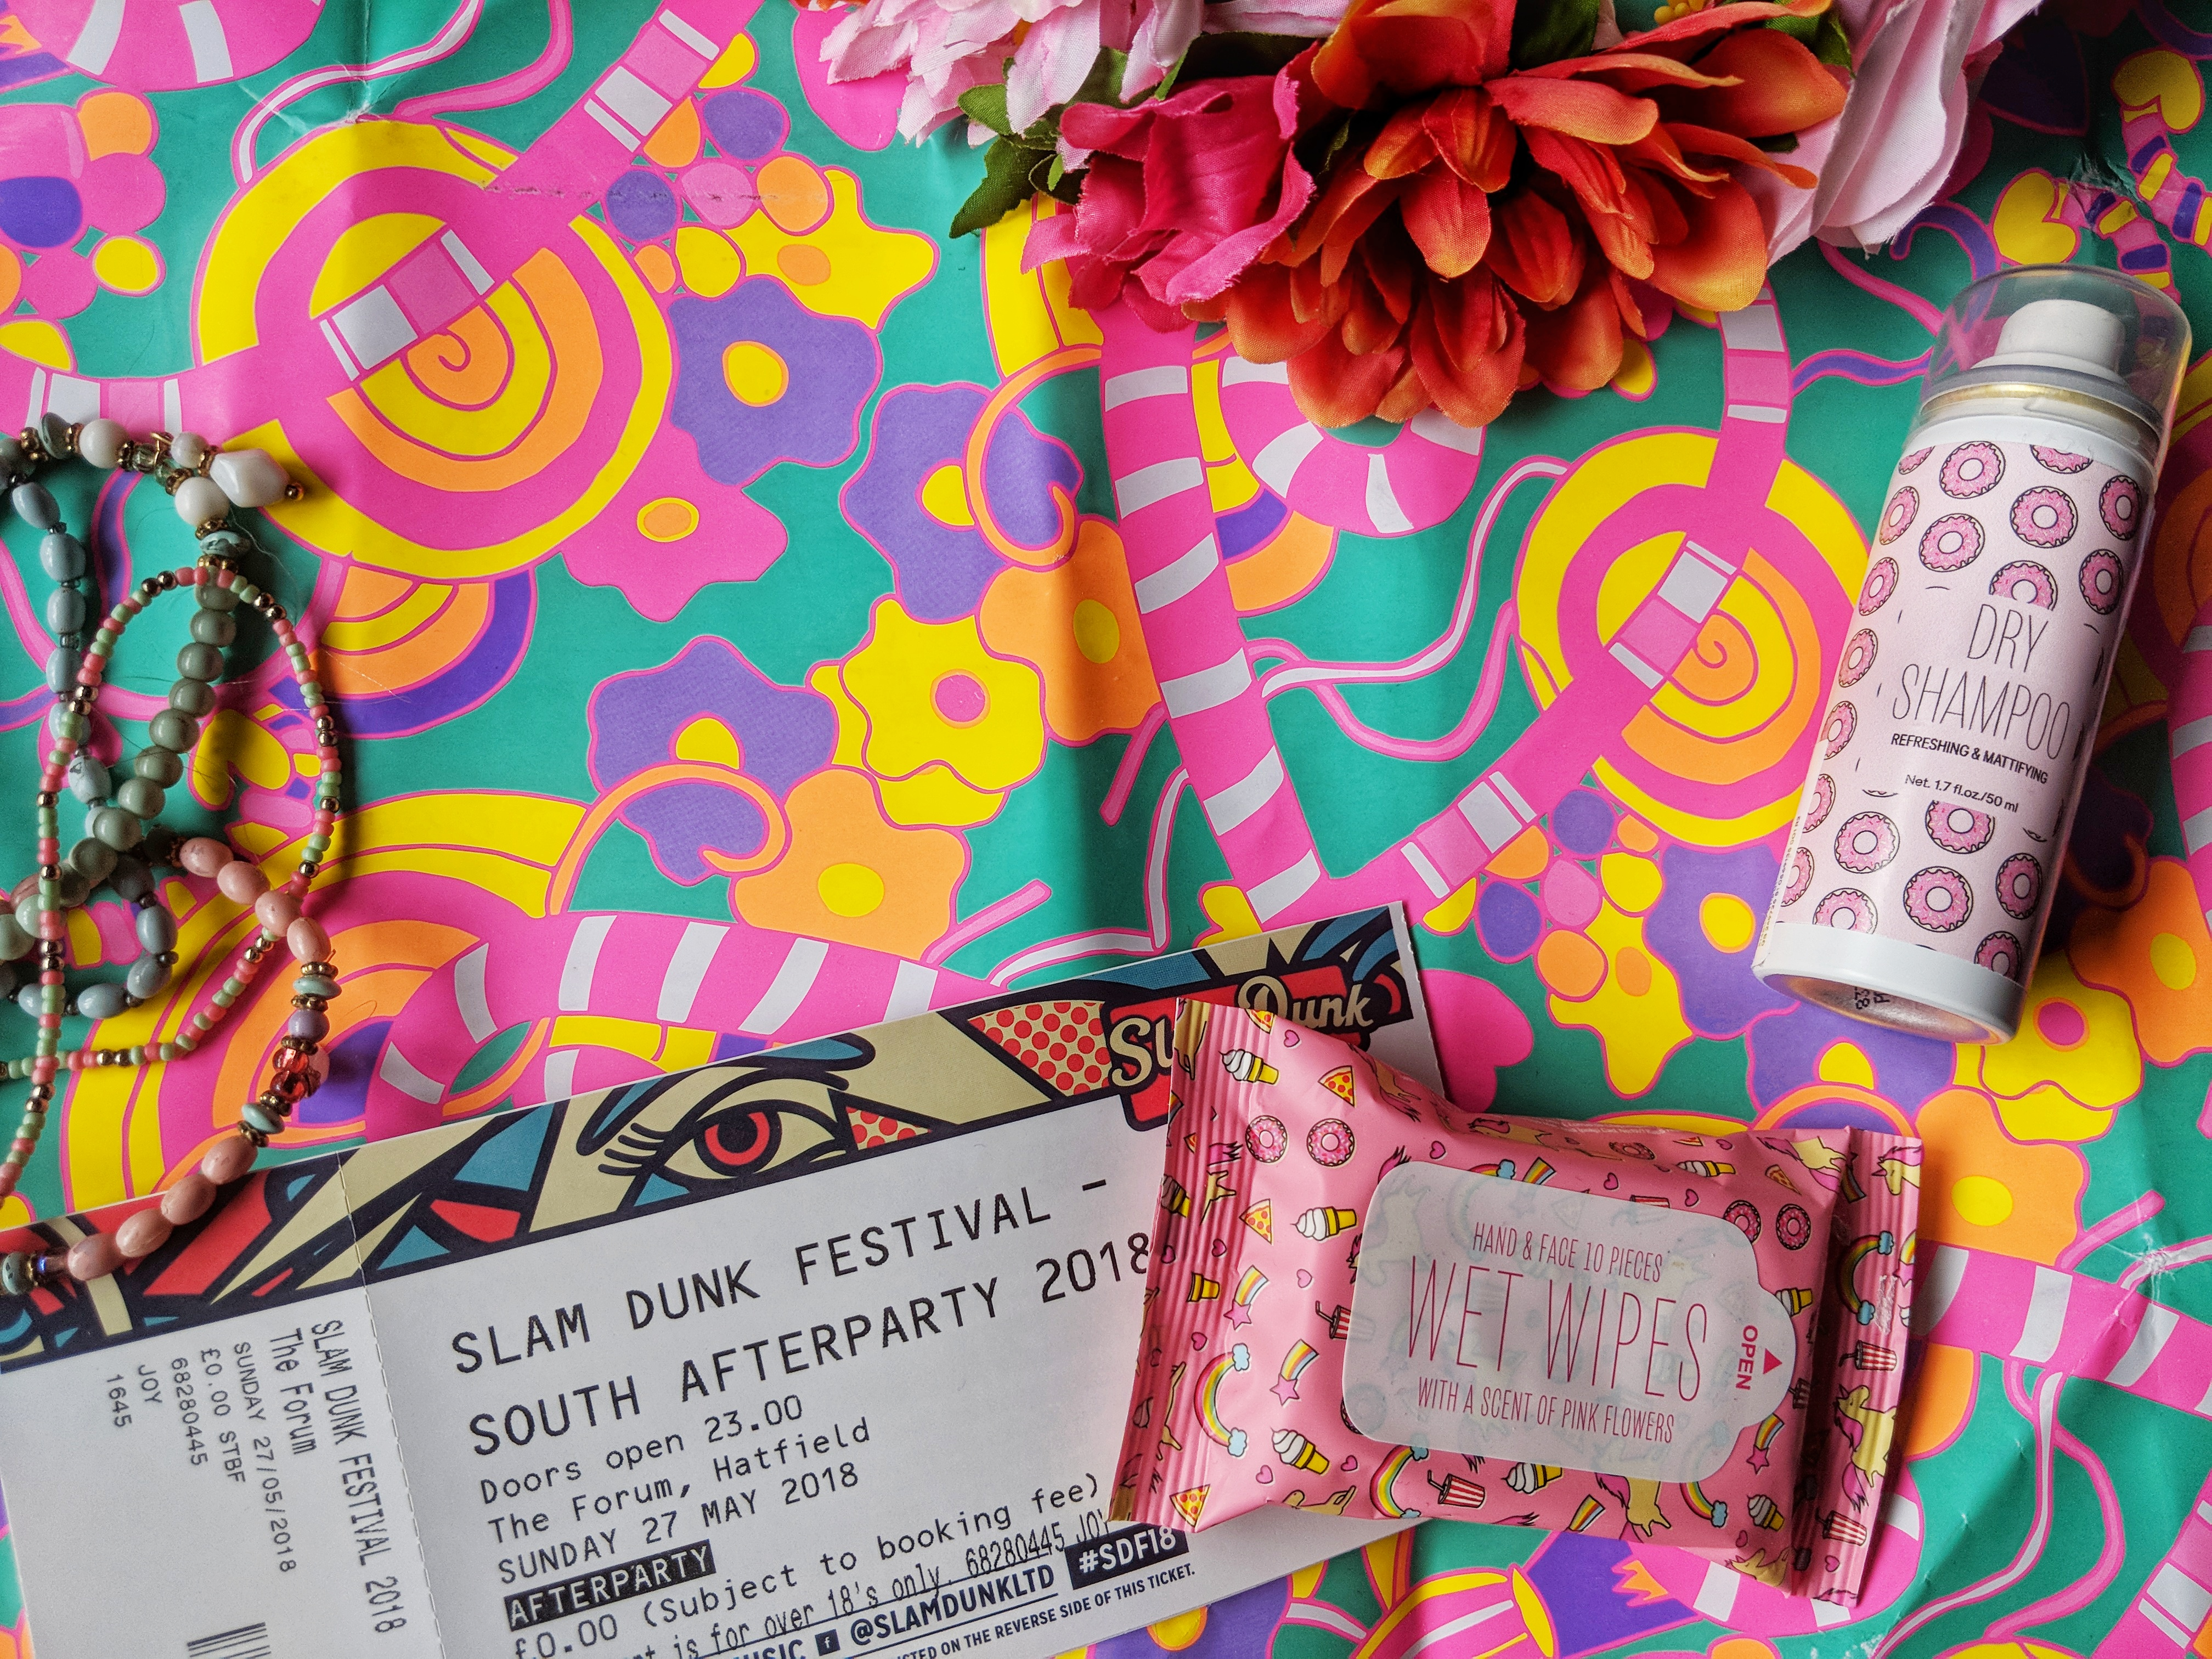 Formidable Joy | UK Lifestyle Blog | Brand Crush | Pic 'n' Mix Festival Kit | Music Festival | Lifestyle | Pick 'n' Mix